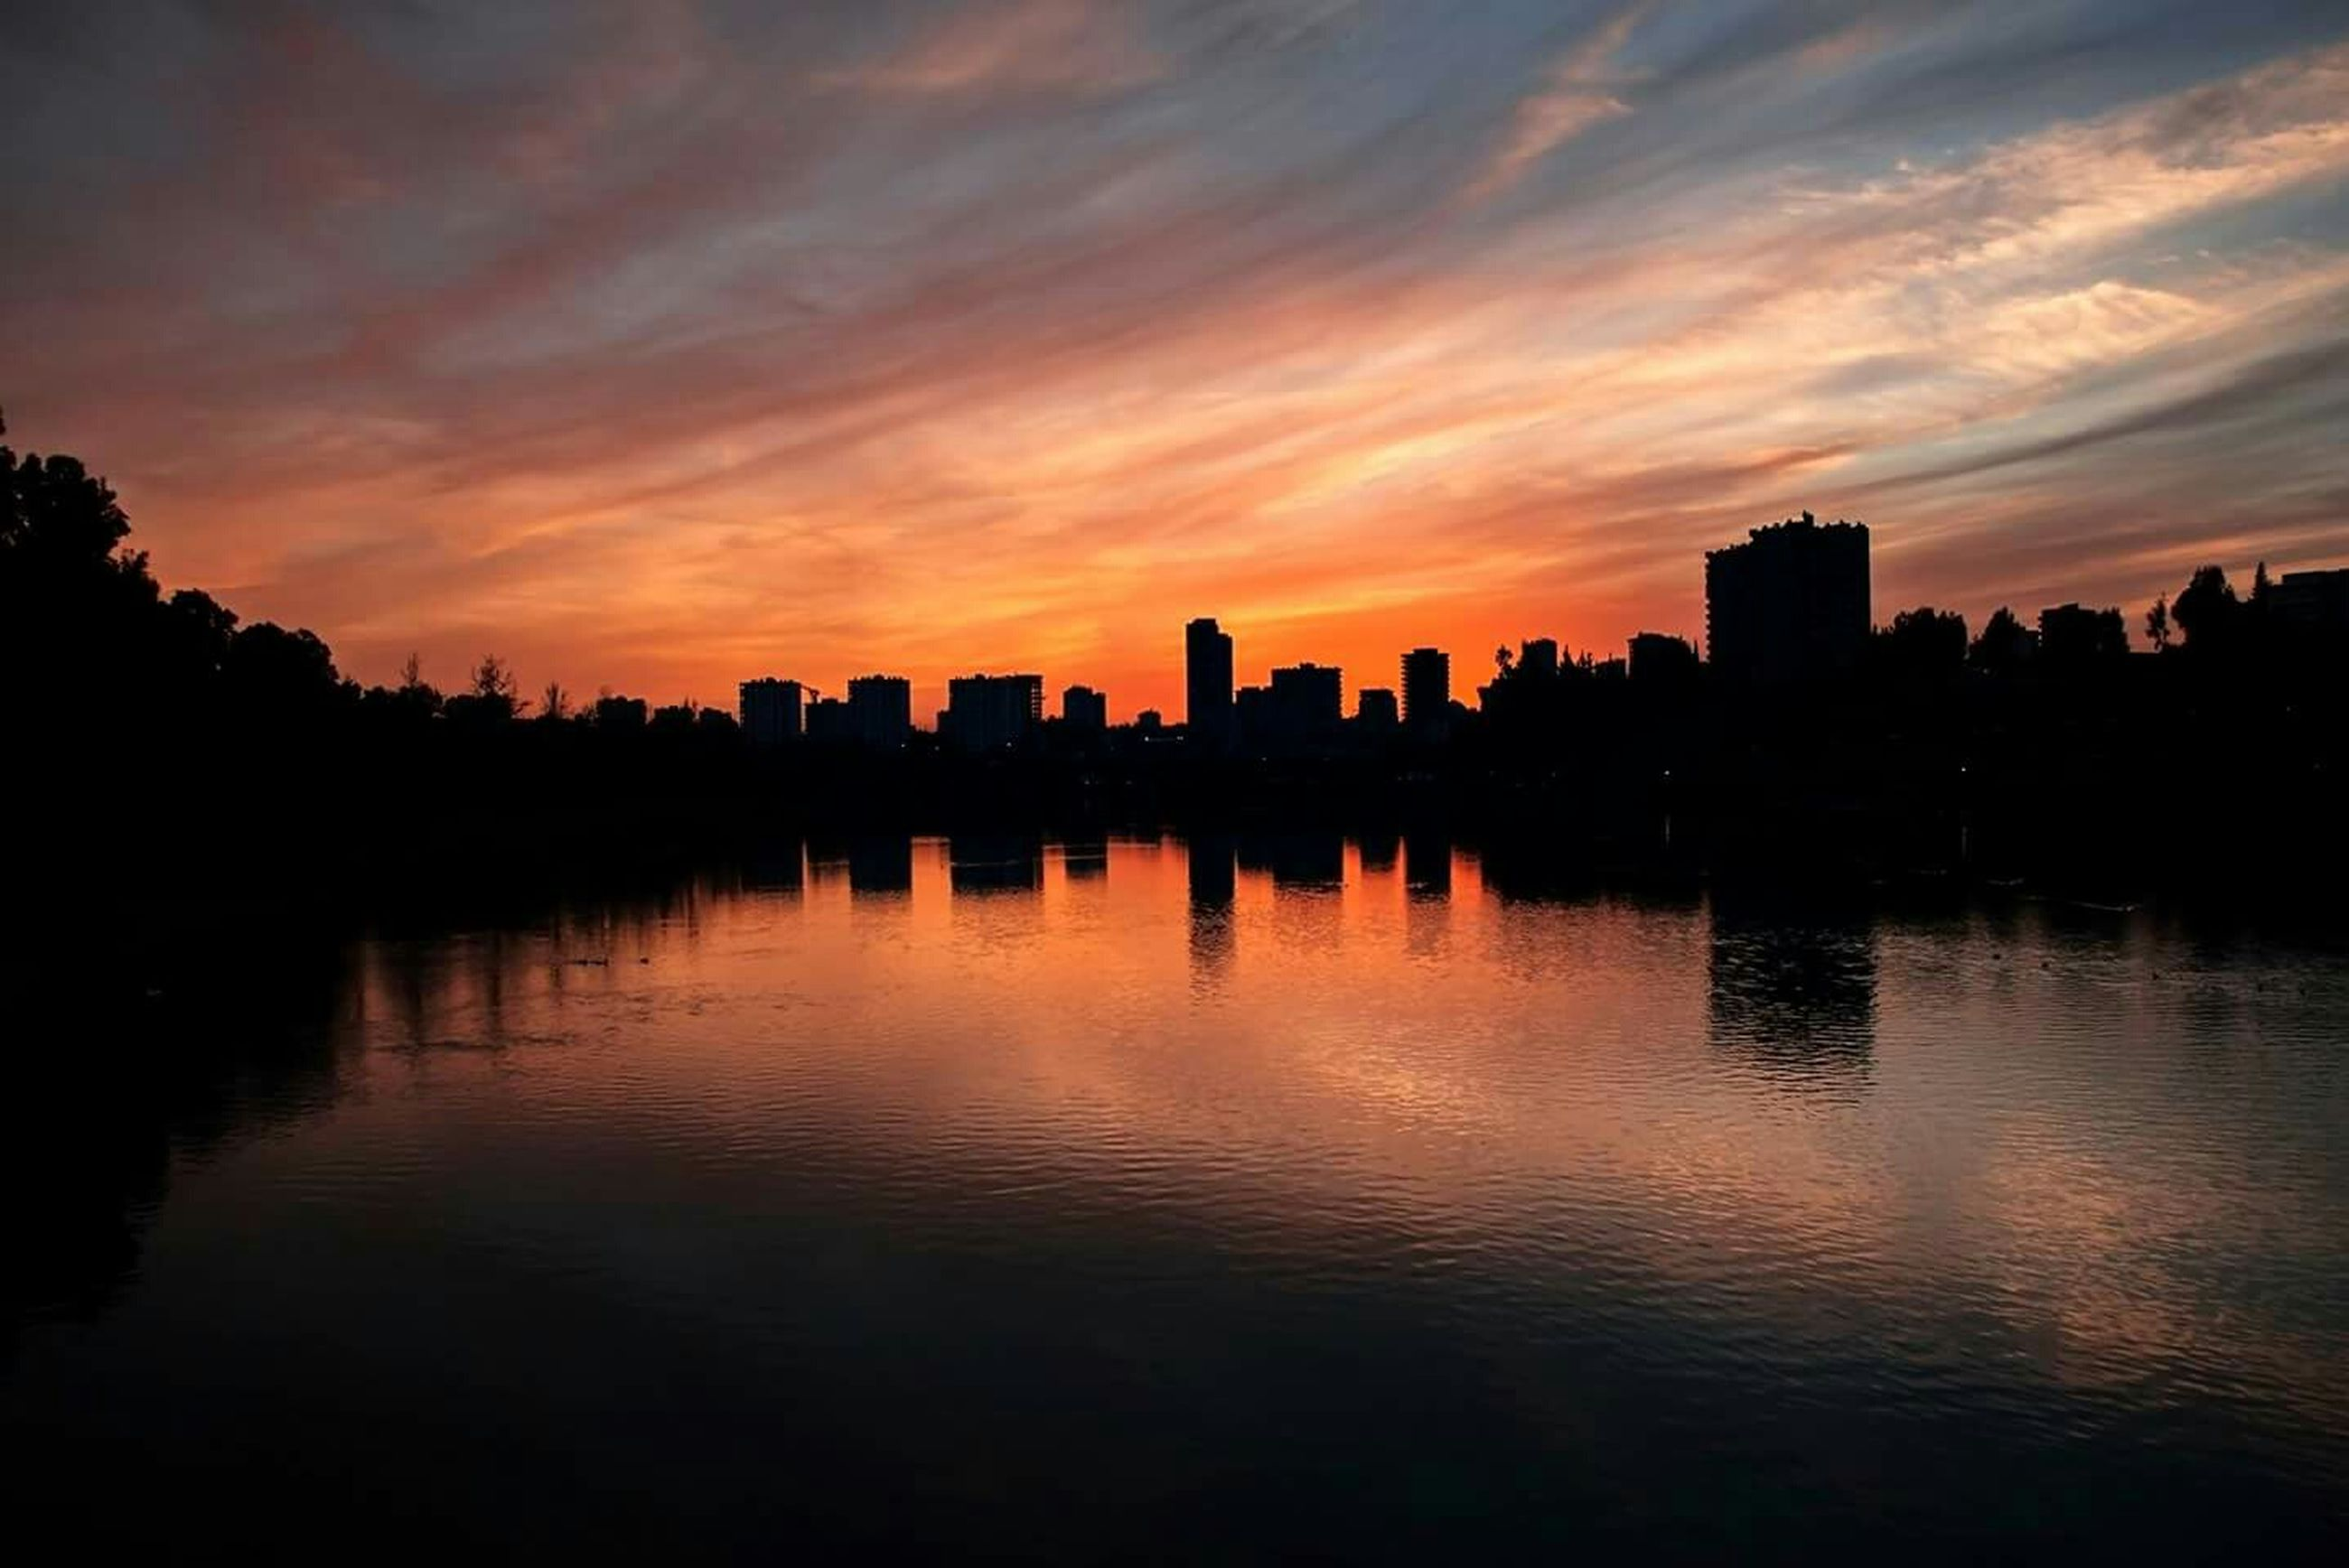 sunset, building exterior, silhouette, architecture, built structure, water, sky, waterfront, city, reflection, river, cloud - sky, orange color, scenics, cloud, lake, beauty in nature, cityscape, dramatic sky, skyline